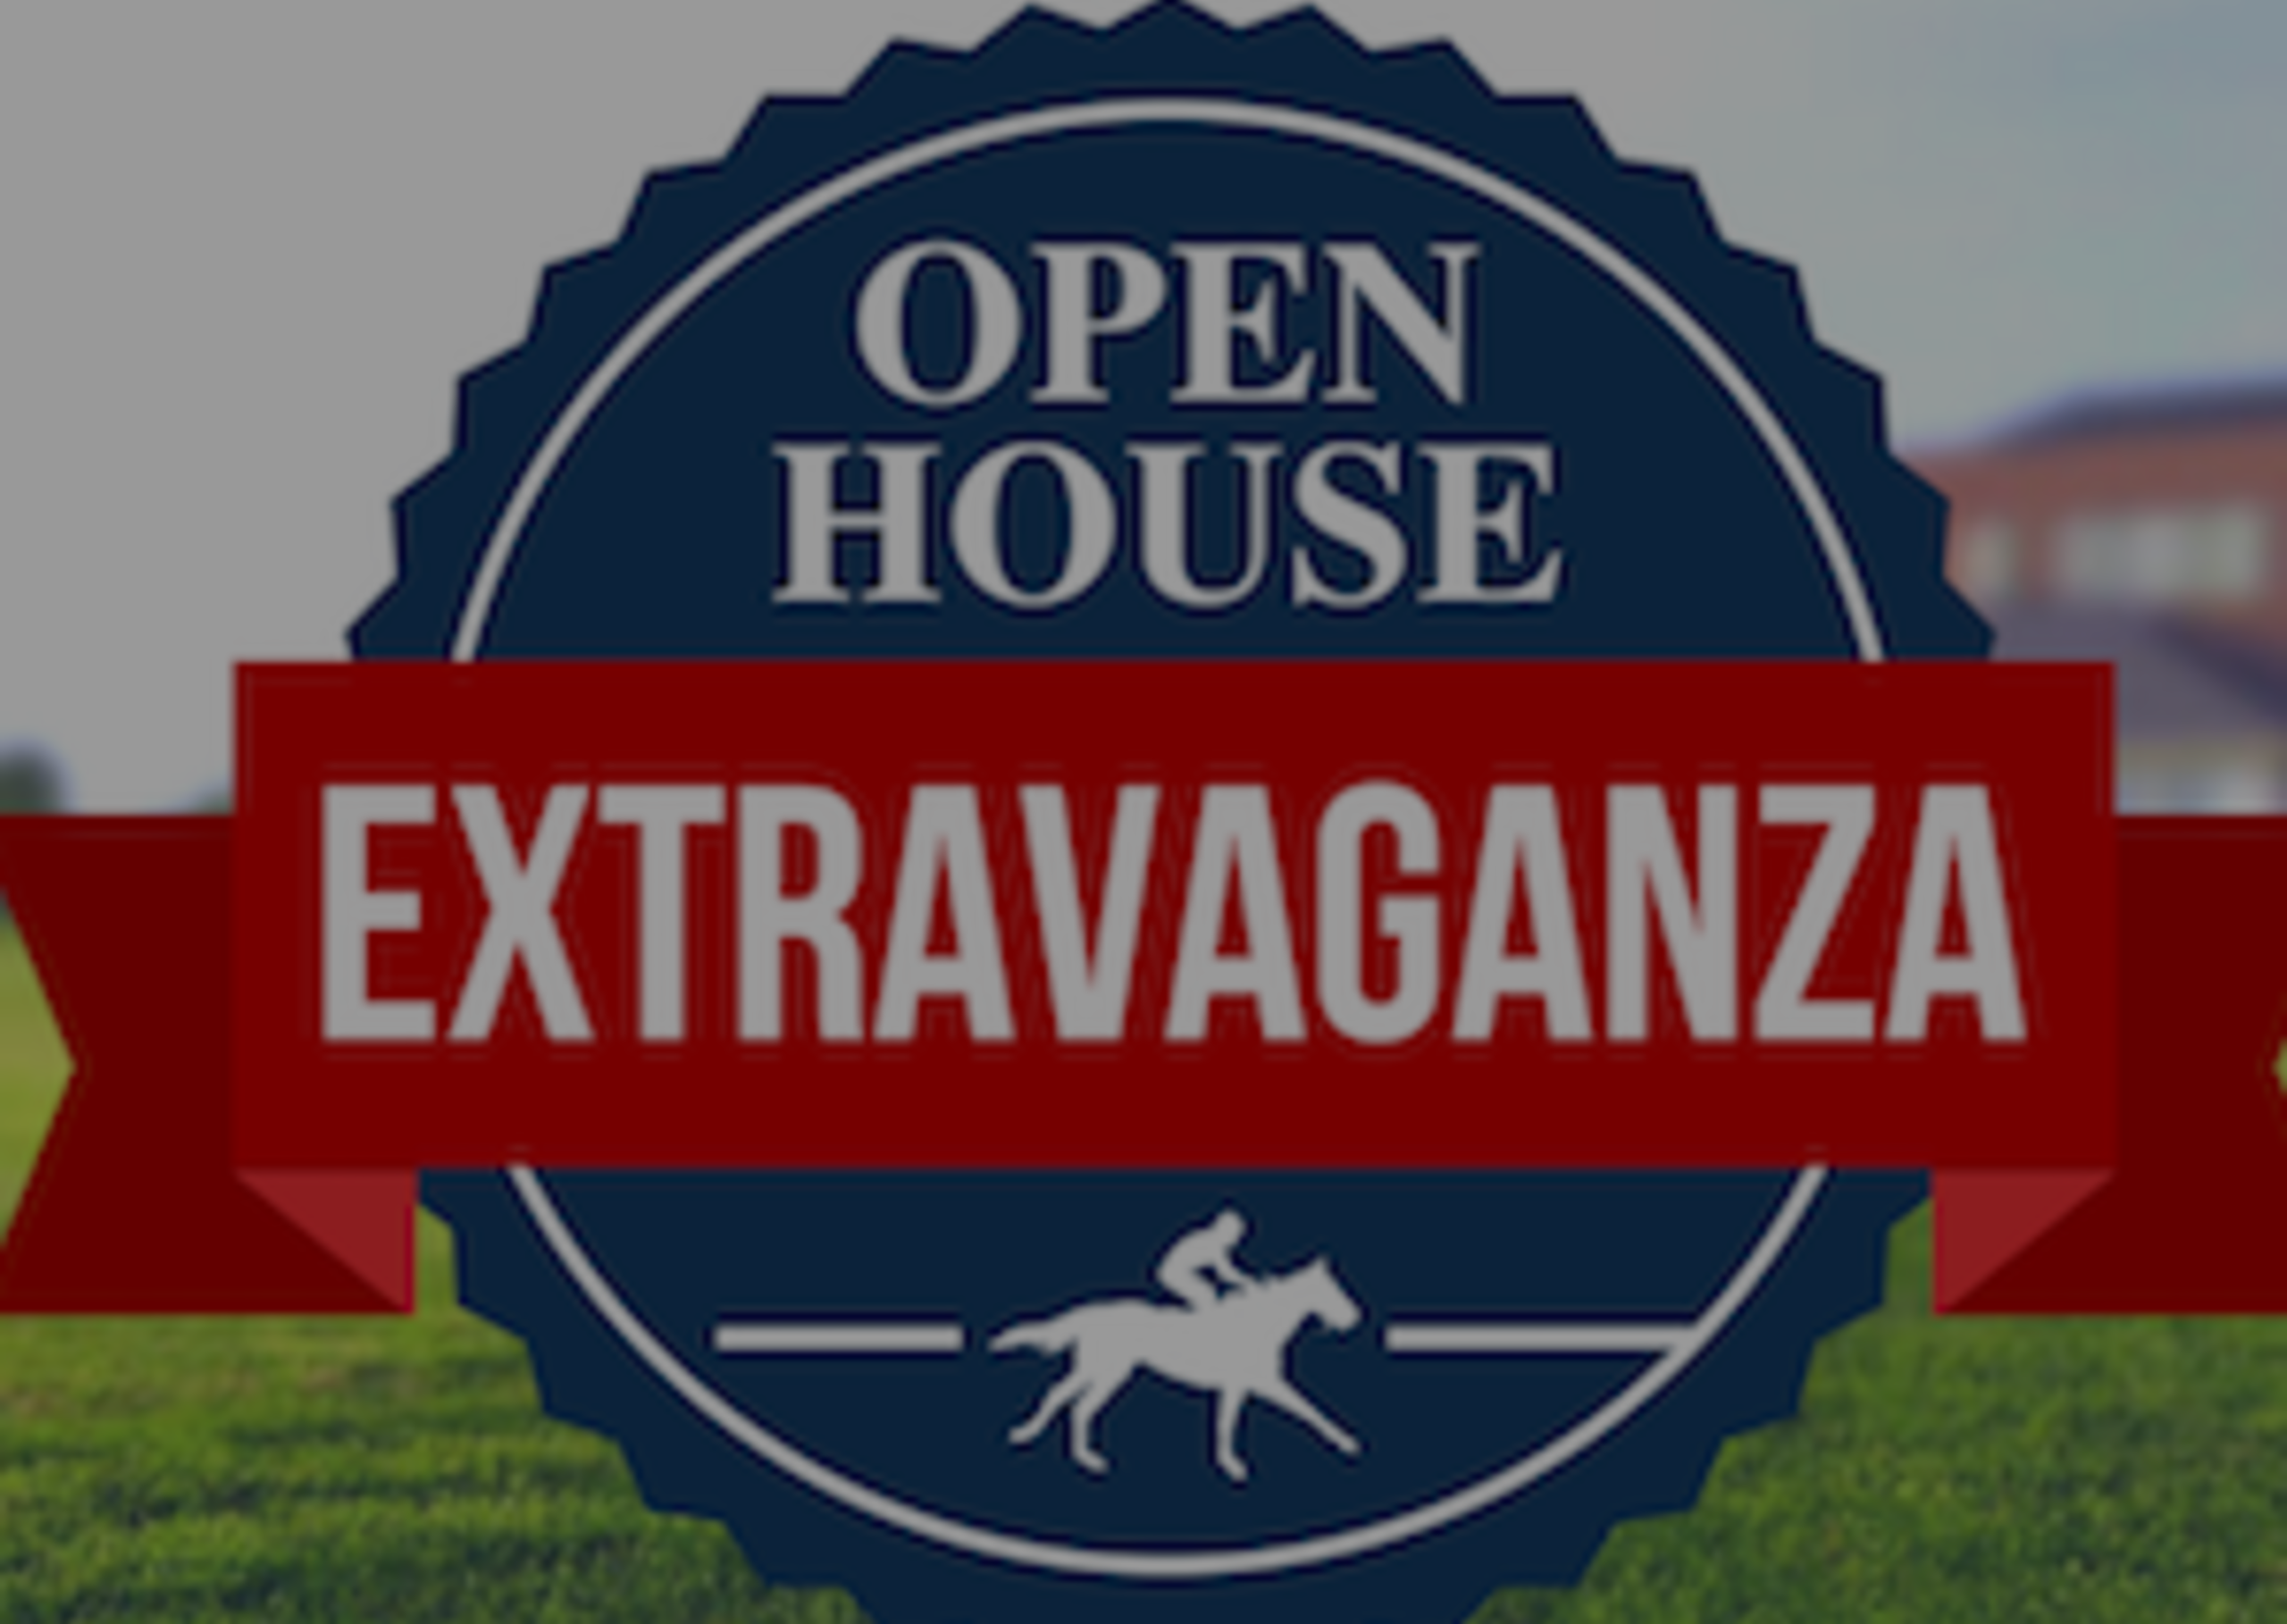 OPEN HOUSE EXTRAVAGANZA 2017